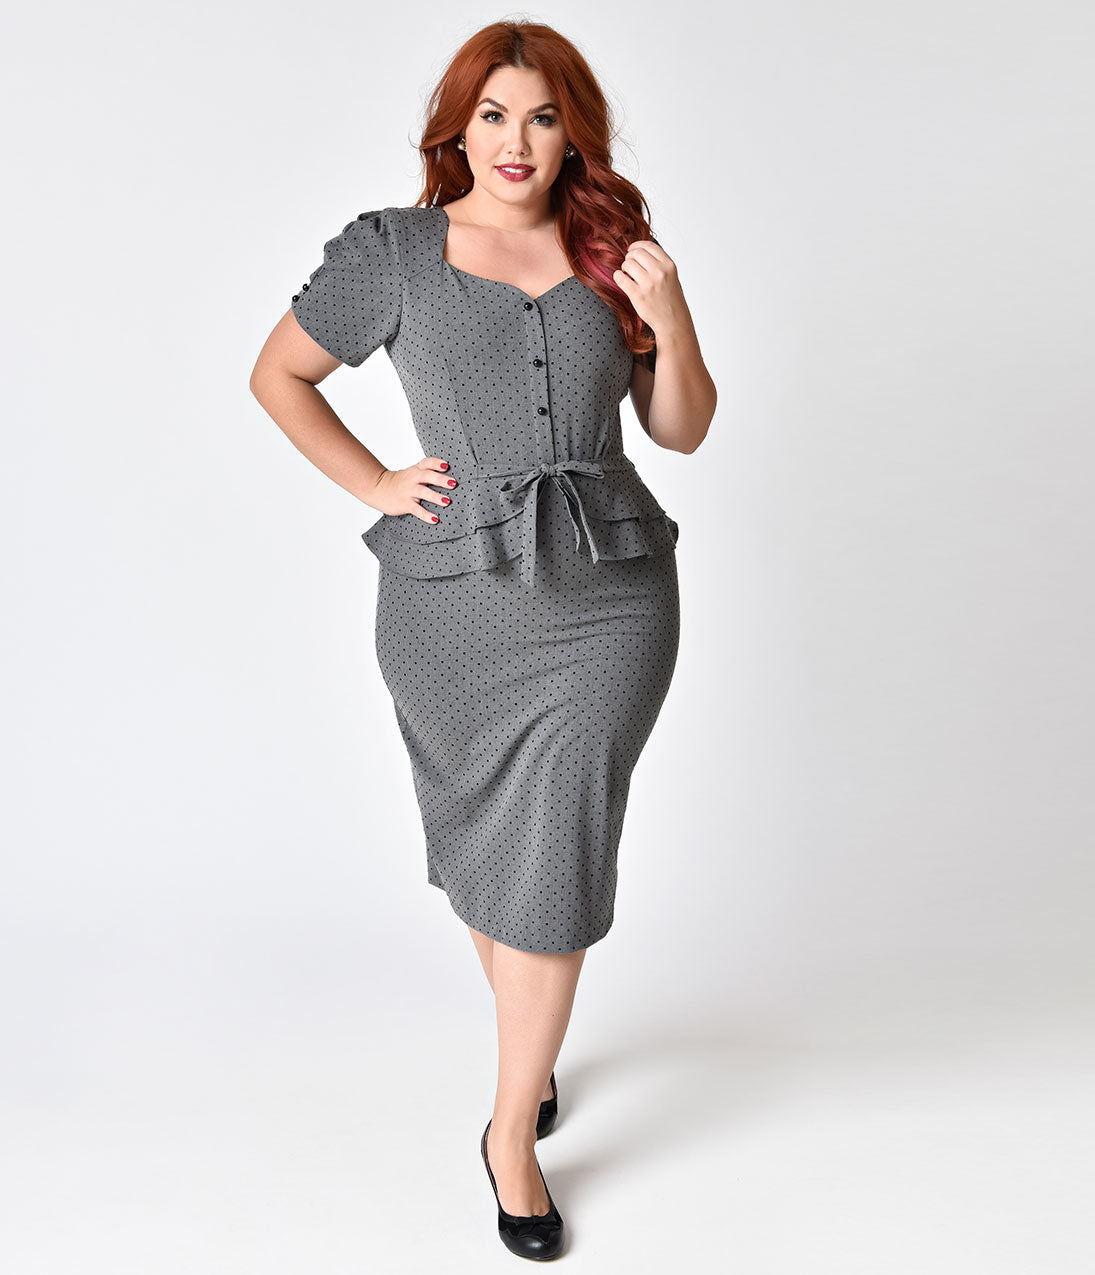 Plus Size Polka Dot Dresses – Vintage 40s, 50s, 60s Dresses Stop Staring Plus Size 1940s Style Grey  Black Polka Dot Faith Wiggle Dress $99.00 AT vintagedancer.com